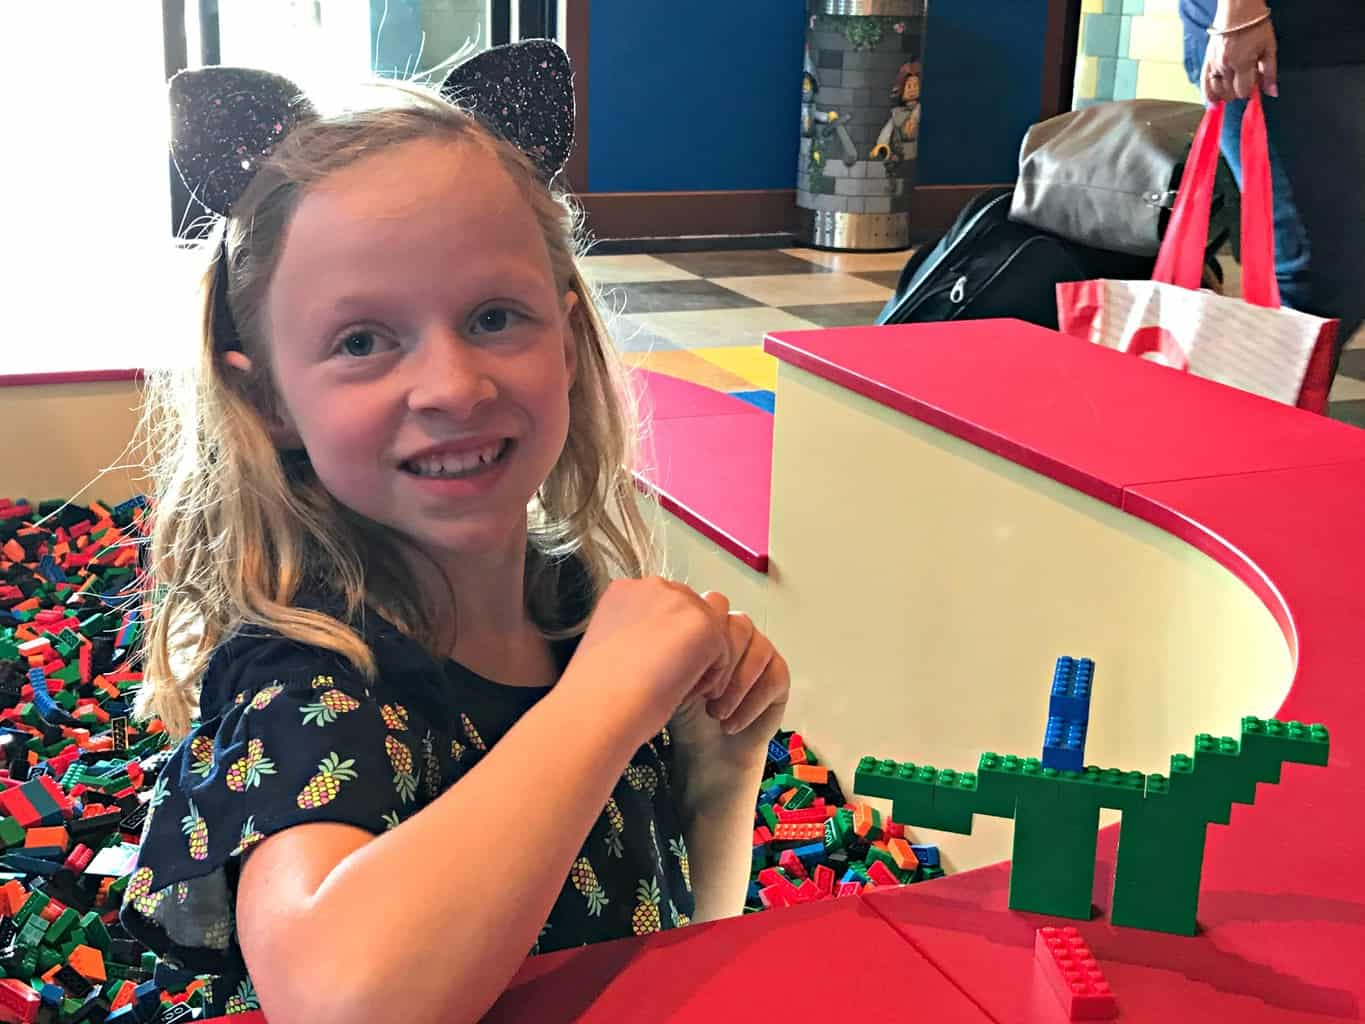 Girl playing with legos at LEGOLAND Castle Hotel